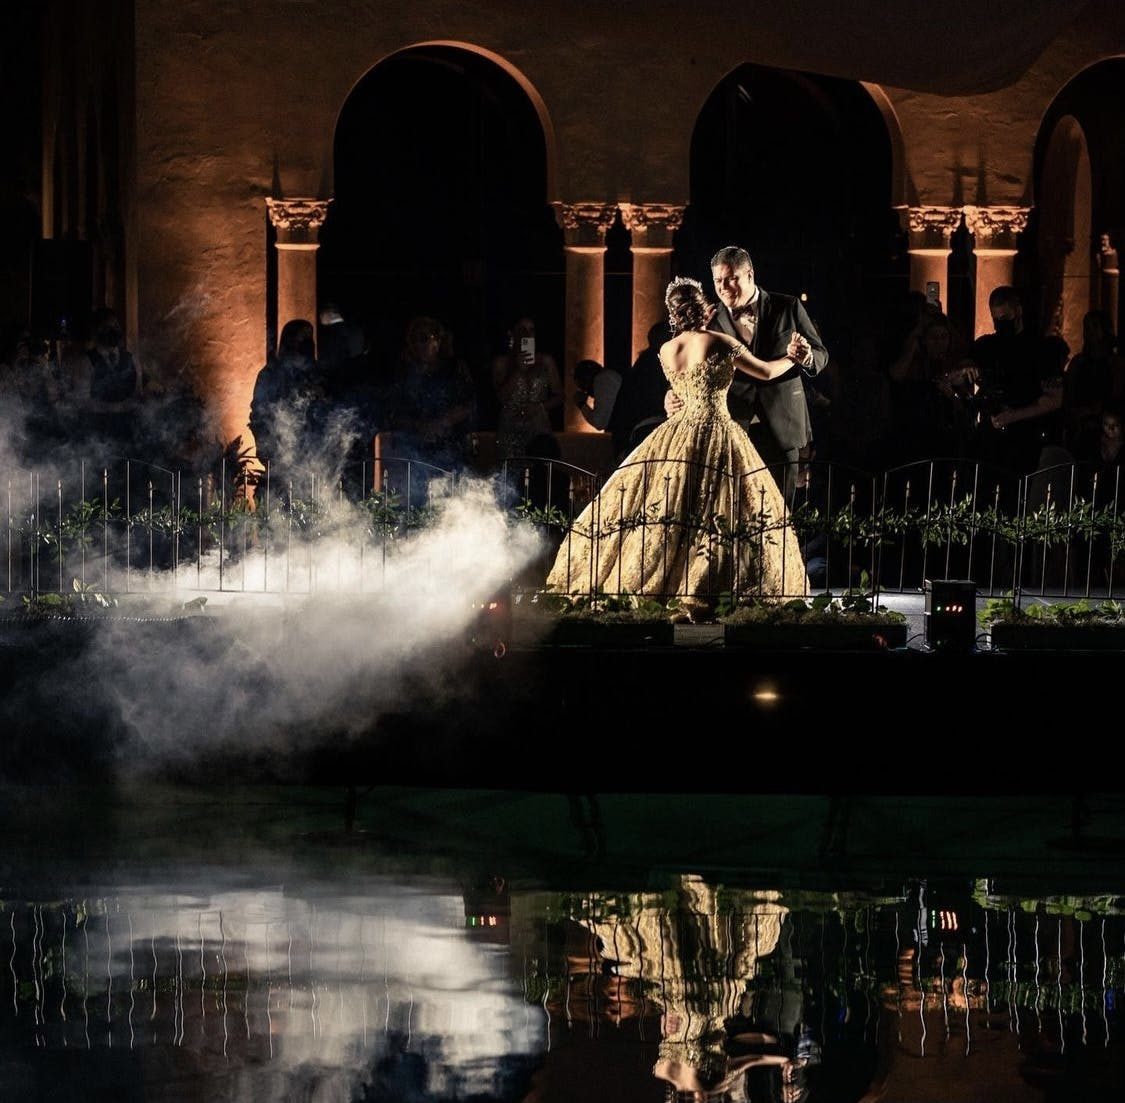 Royal Elegance Quinceañera Party at the Coral Gables Country Club in Coral Gables, FL